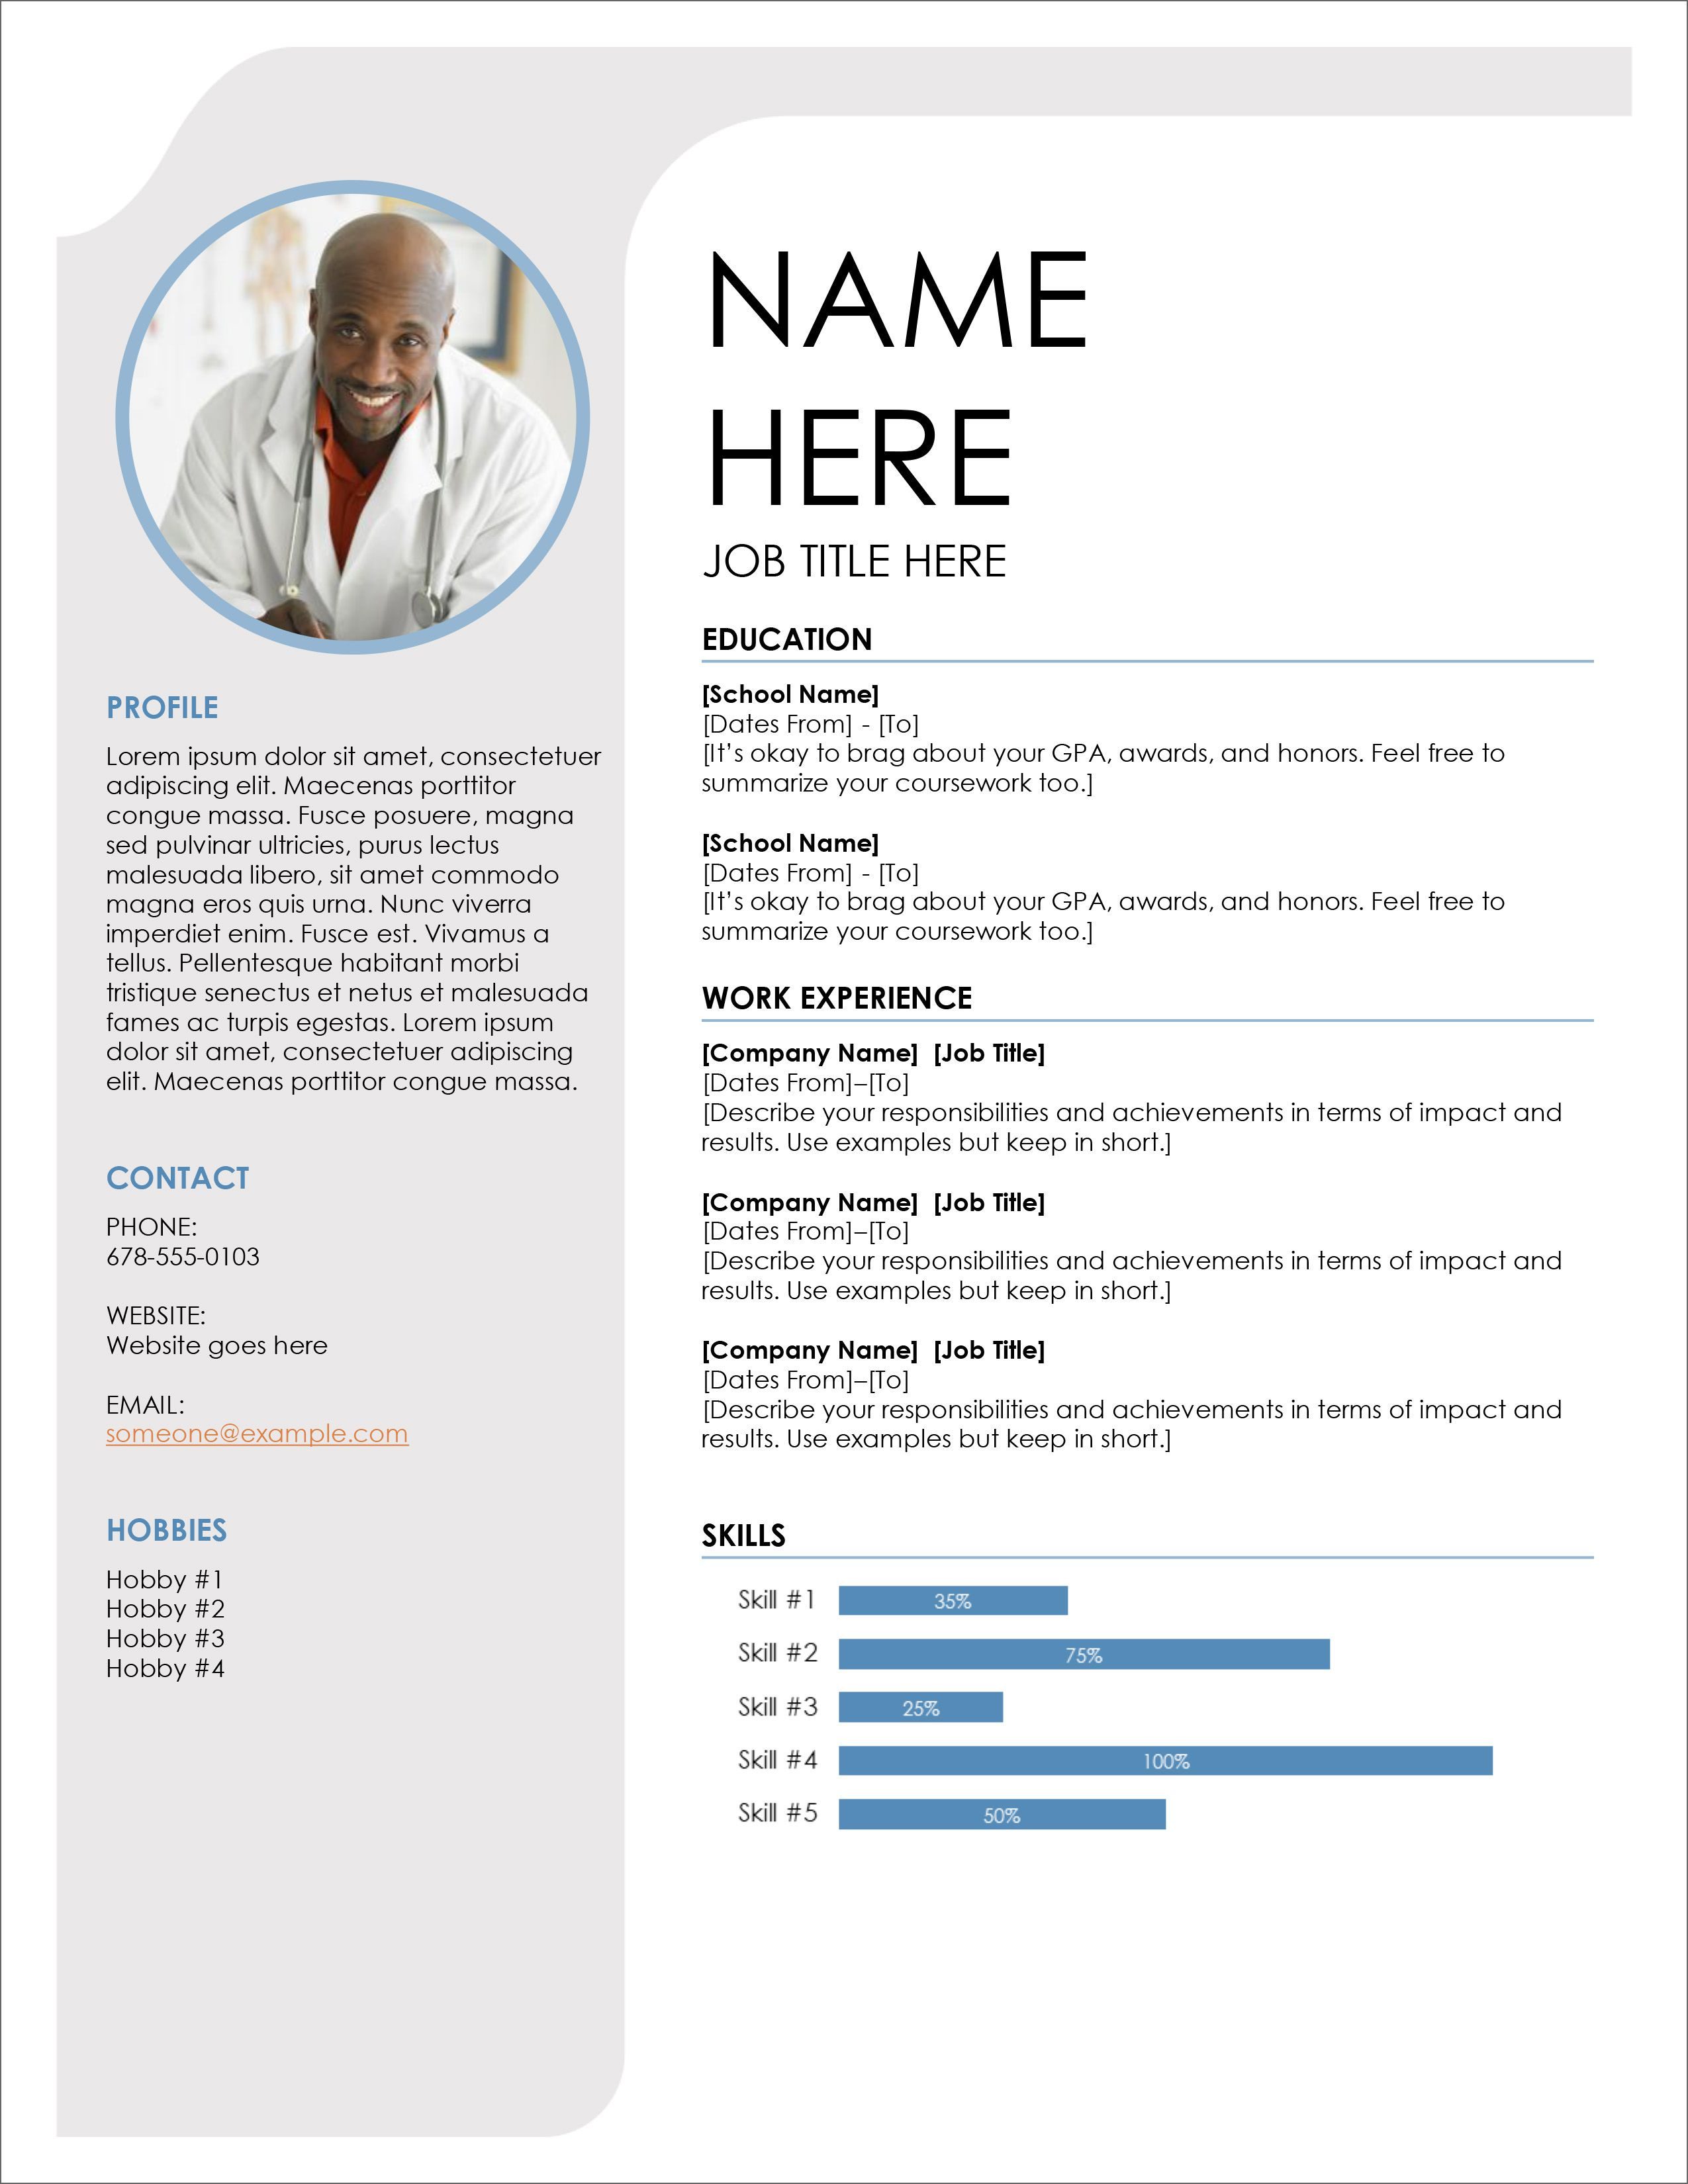 005 Surprising Download Resume Sample In Word Format High Resolution  Driver Cv Free Best TemplateFull